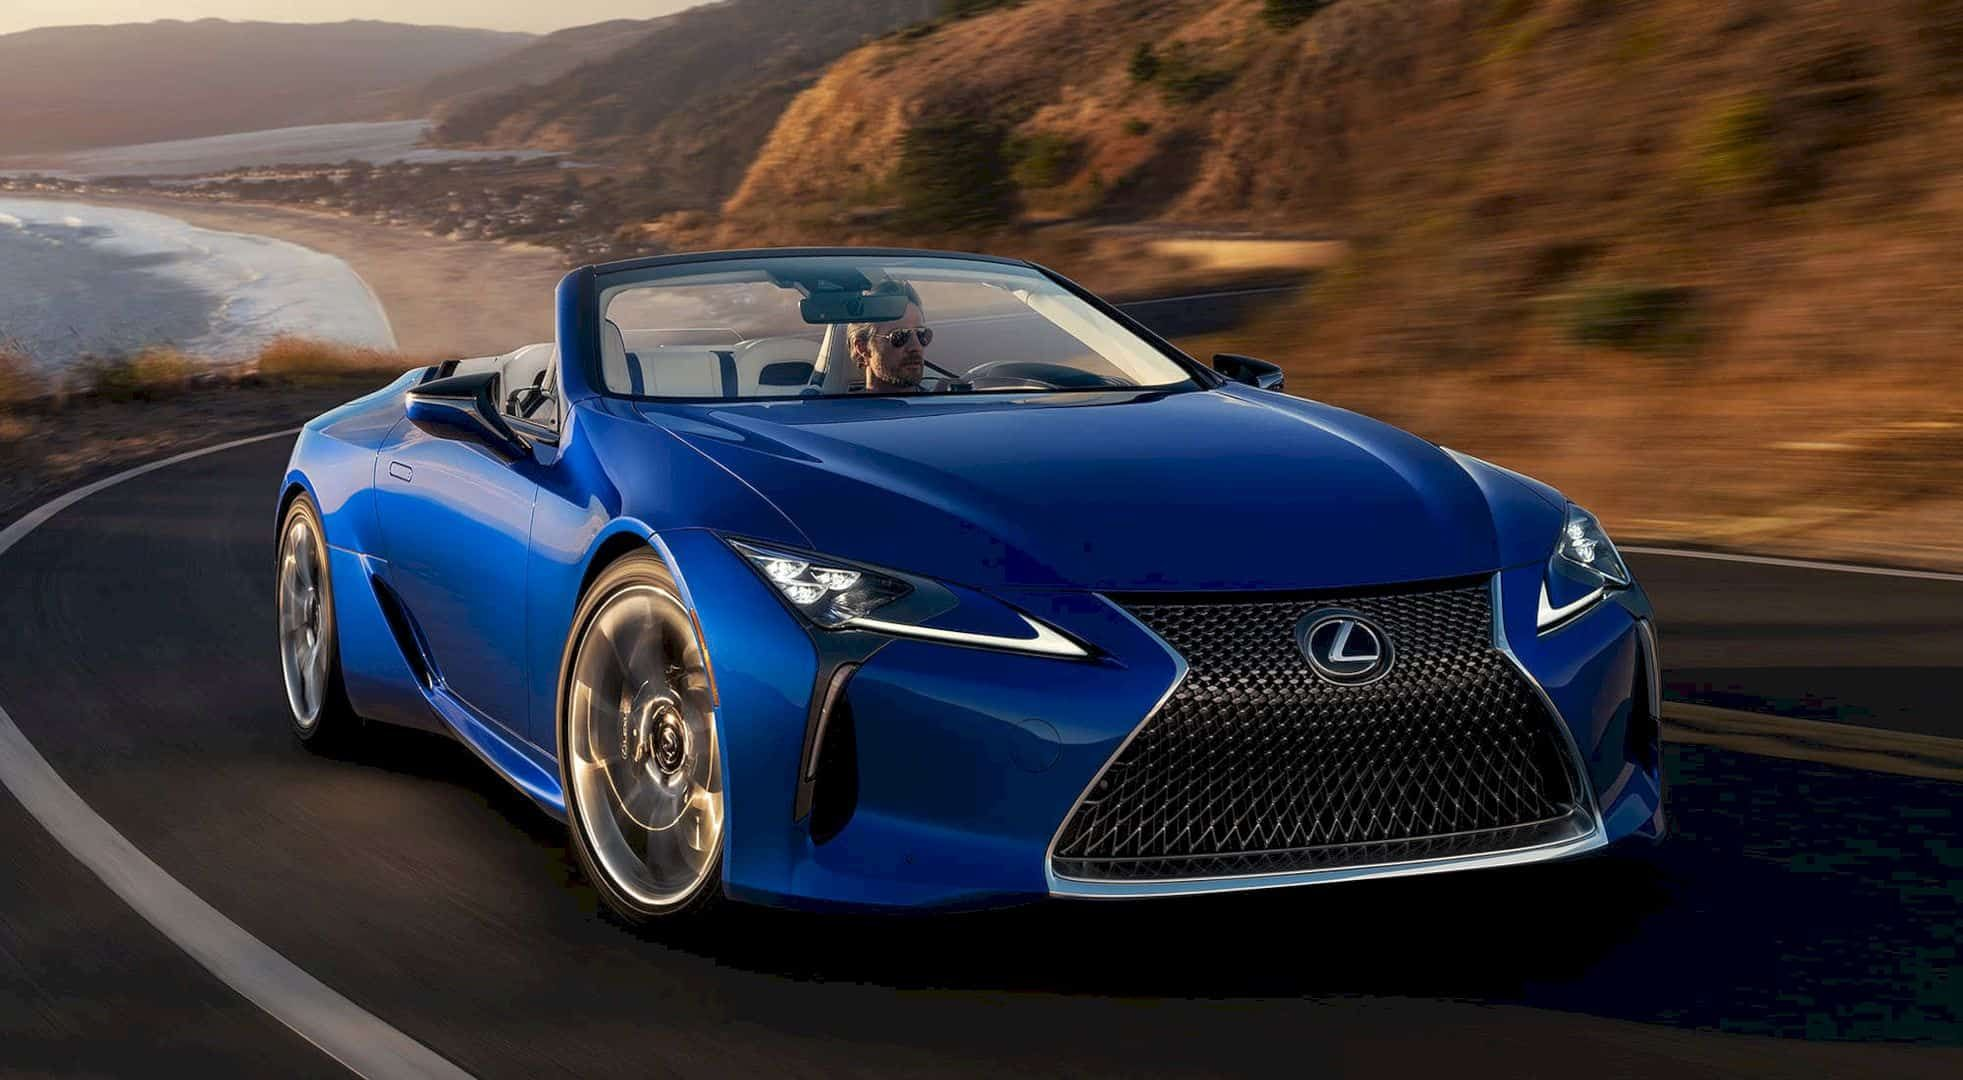 Lexus Lc 500 Convertible In 2020 Lexus Lc Lexus Super Cars